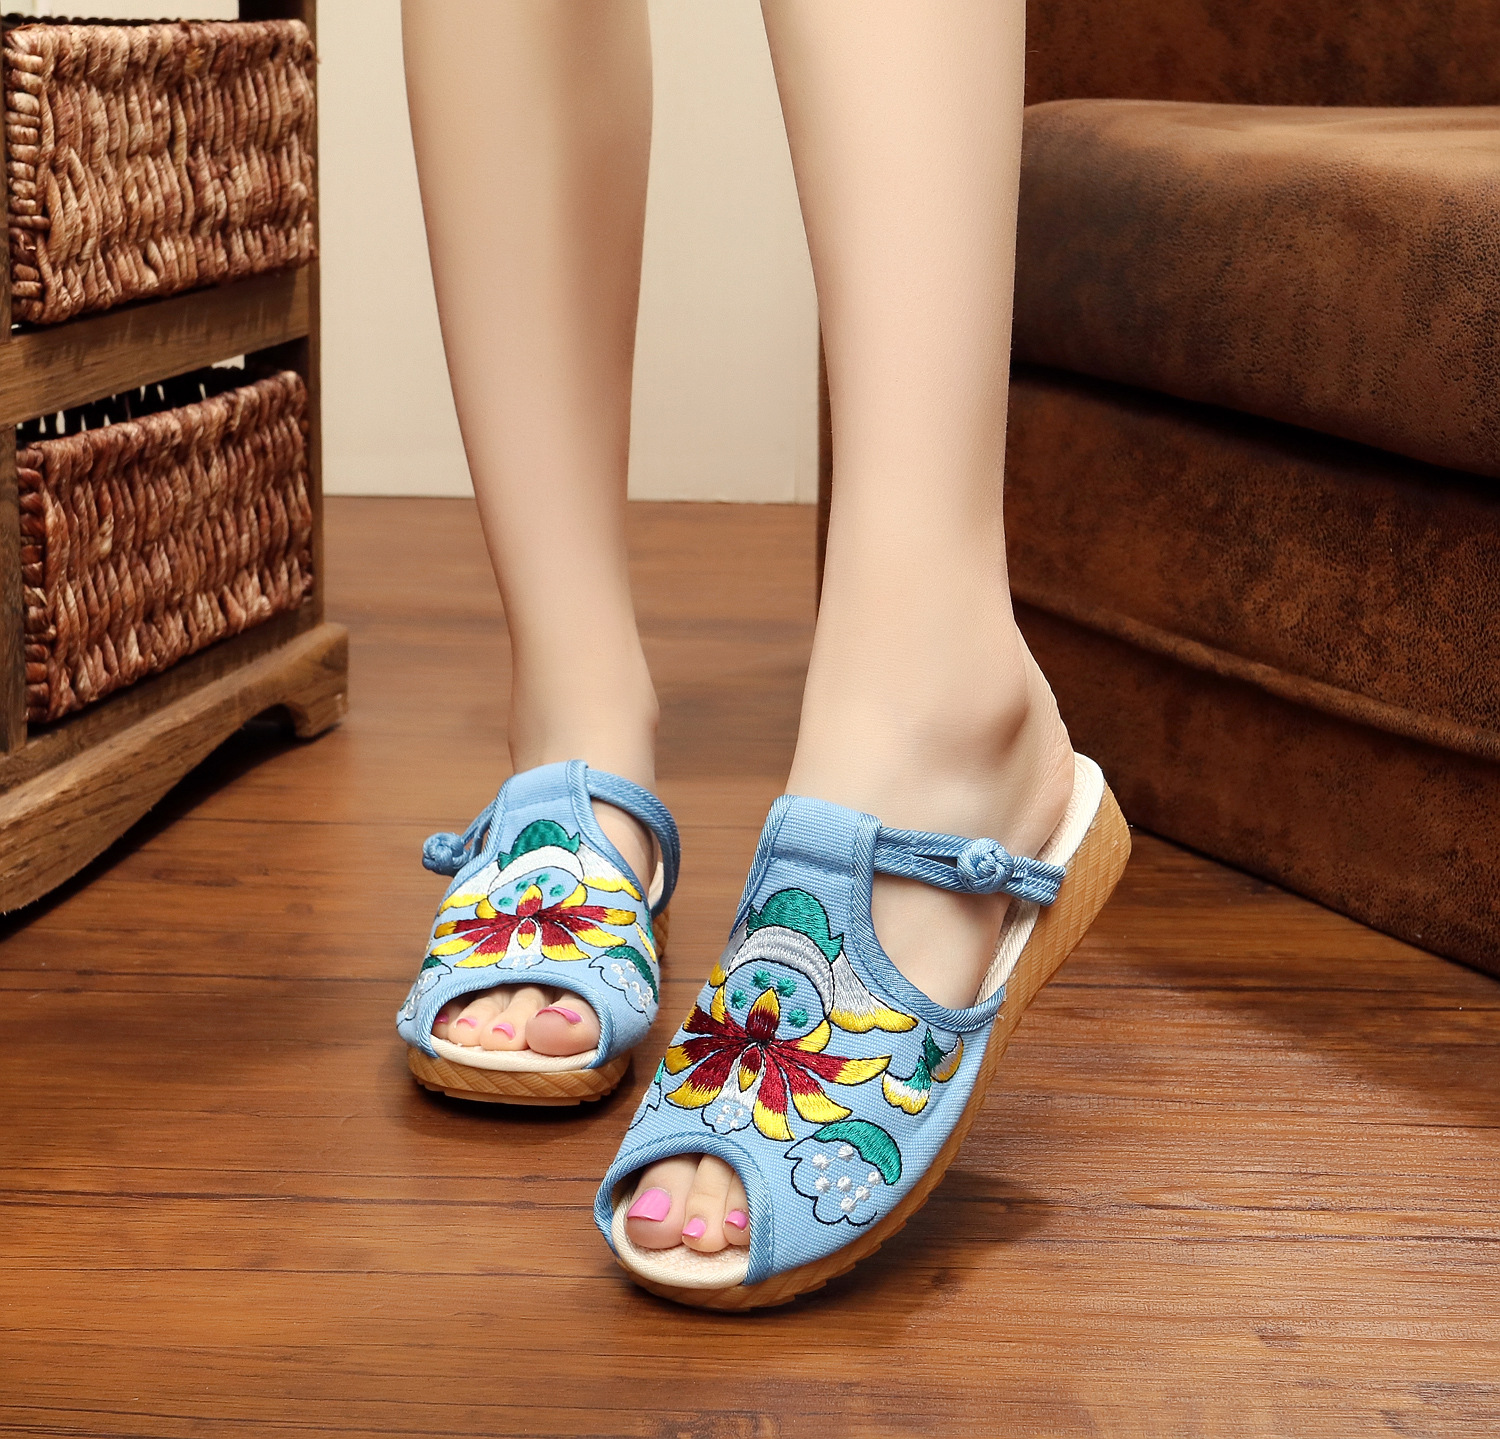 Vintage Arrive Chinese National Old BeiJing embroidery slippers Canvas Women Lotus flower embroidered cloth flat slippers